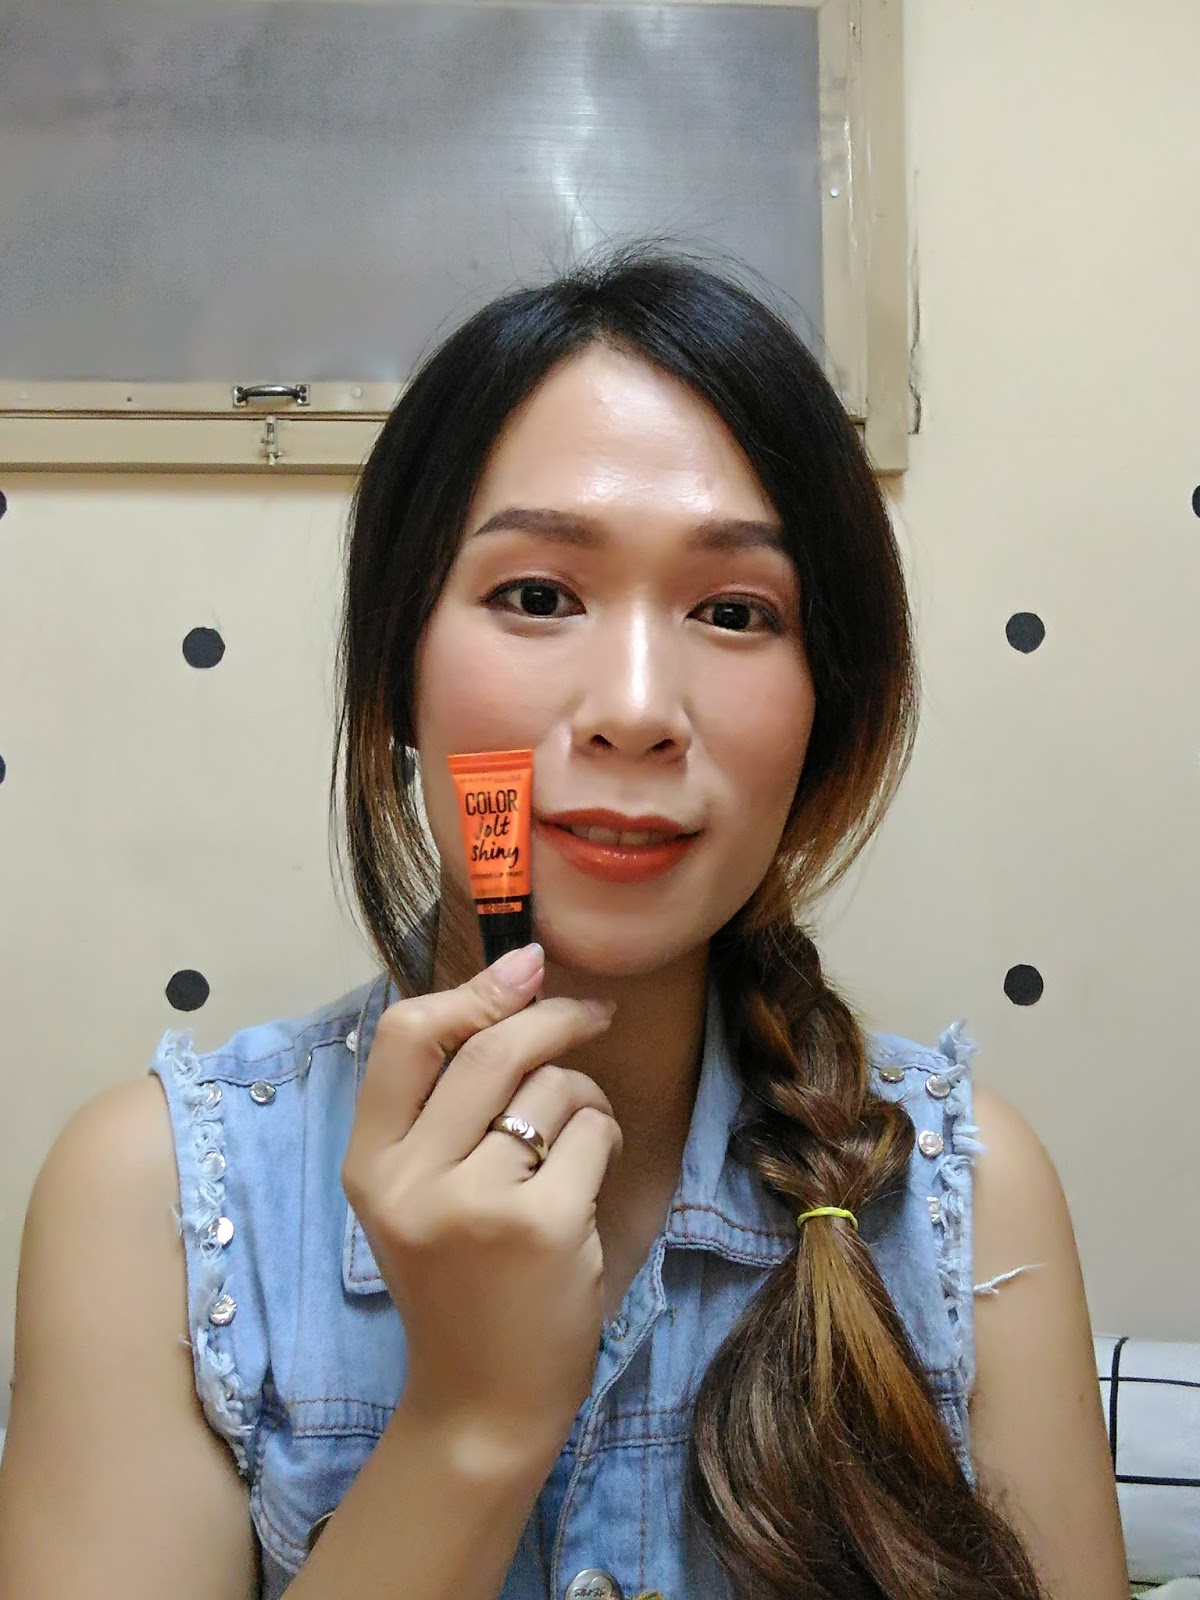 02 - Maybelline Color Jolt Shiny Intense Lip Paints - Orange Outburst